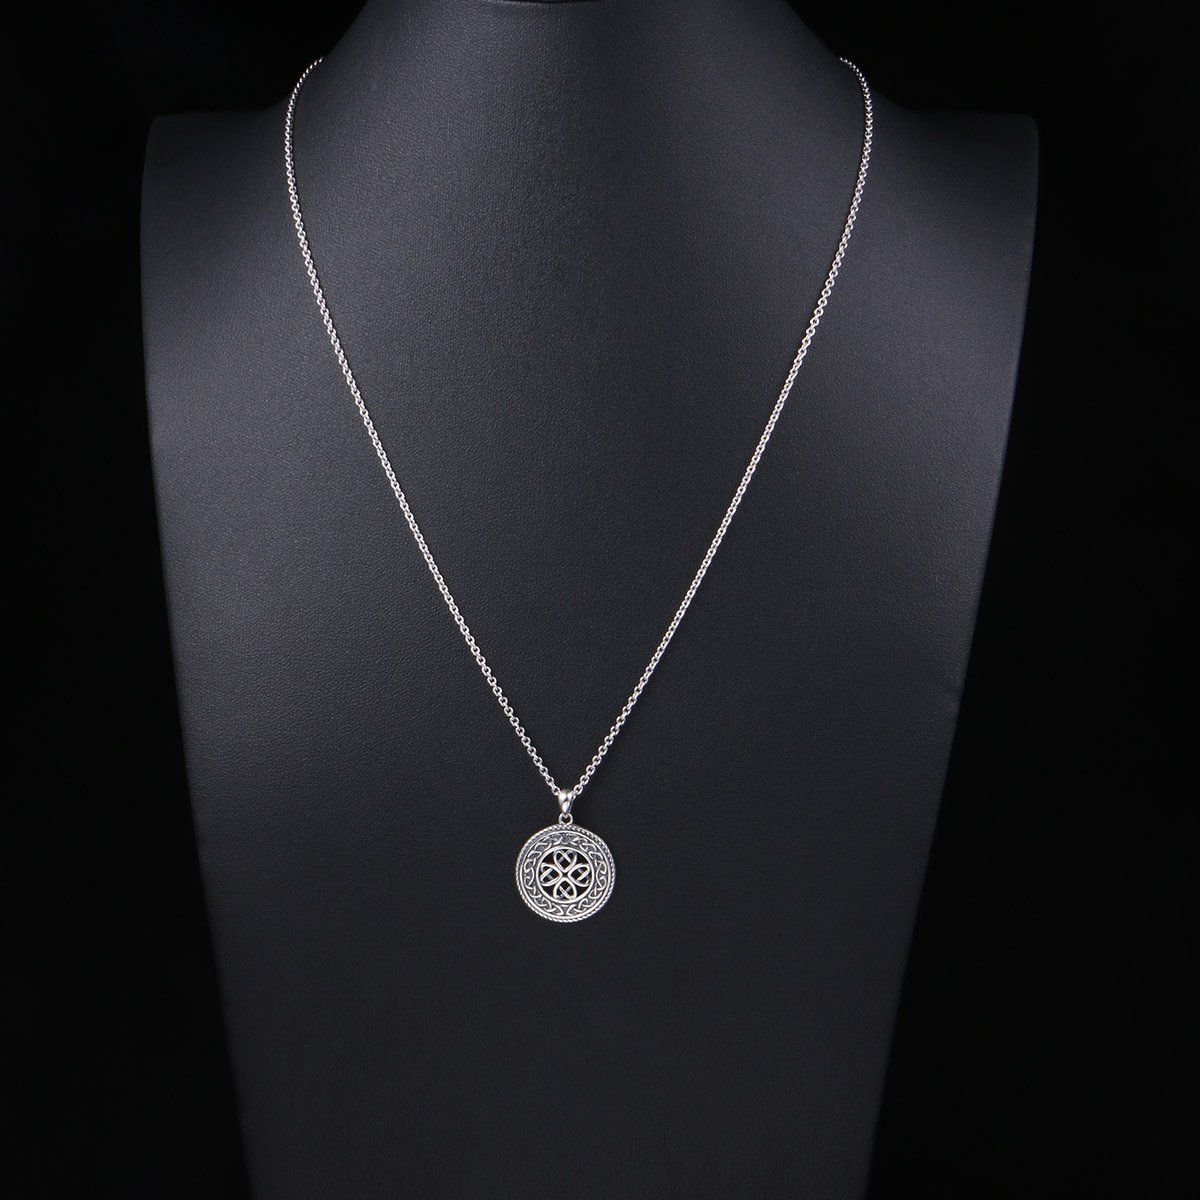 a3980e1c0aeb SILVER MOUNTAIN 925 Sterling Silver Jewelry Oxidized Good Luck Irish Knot  Celtic Medallion Round Pendant Necklace 20 inch -- Discover more by  checking out ...